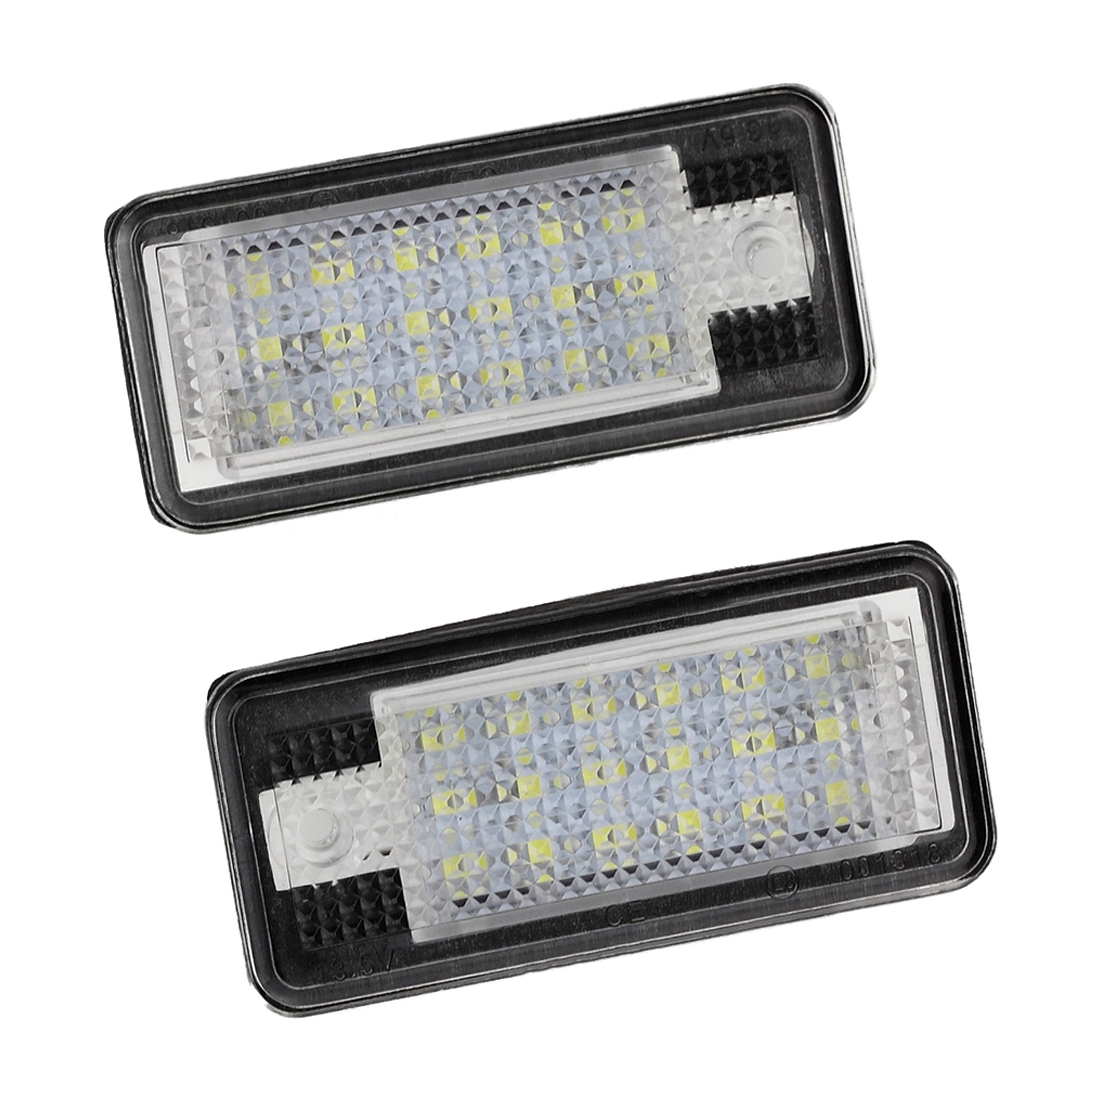 2x 18 LED License Number Plate Light Lamp For Audi A3 S3 A4 S4 B6 A6 S6 A8 S8 Q7 2 pcs led license plate light no error 3528 smd lamp for audi a3 s3 a4 s4 b6 a6 c6 a8 s8 rs4 rs6